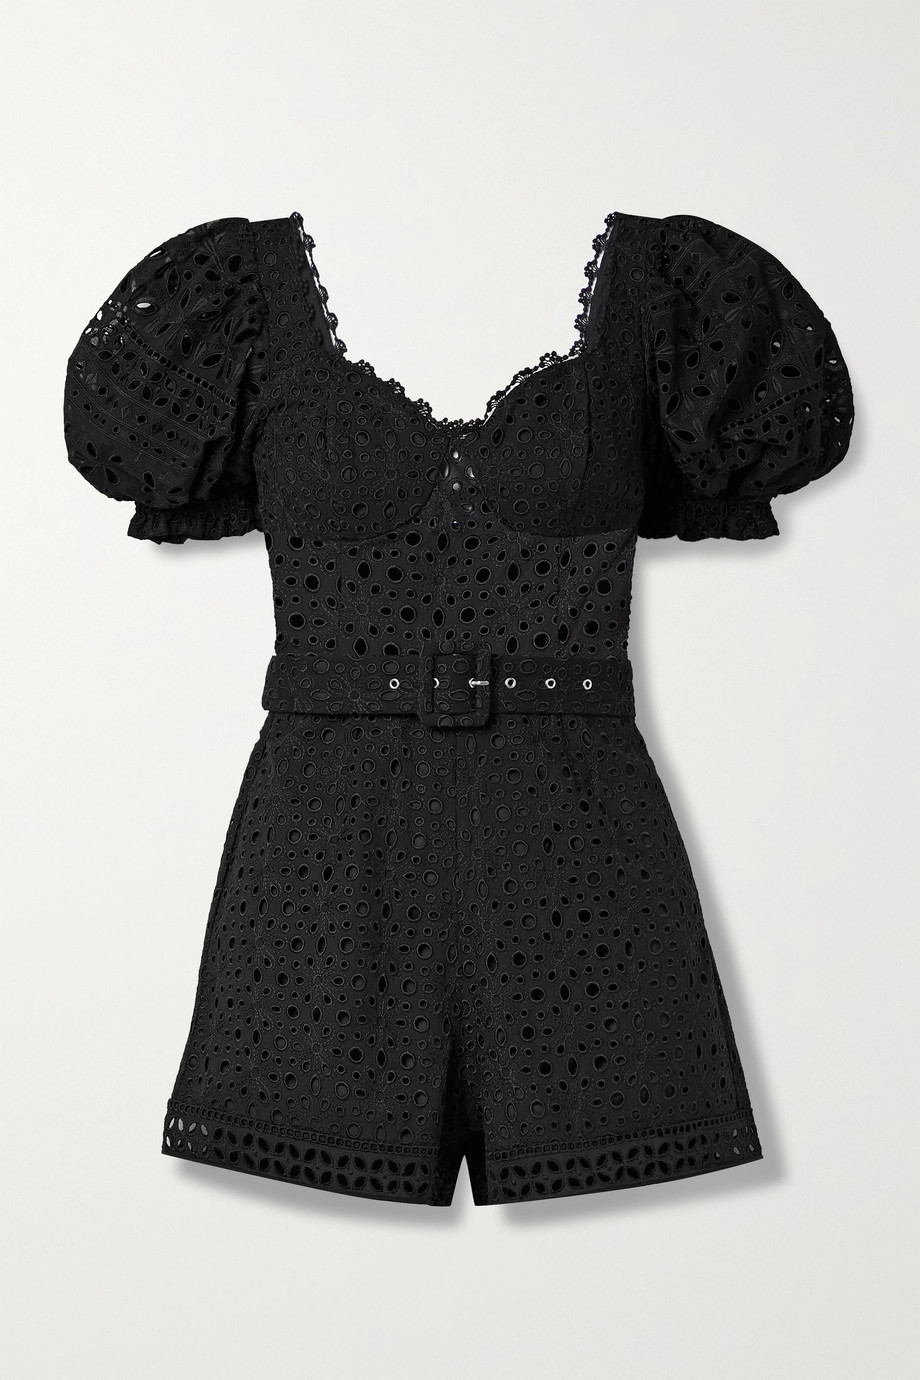 Charo Ruiz Peggi belted broderie anglaise cotton-blend playsuit